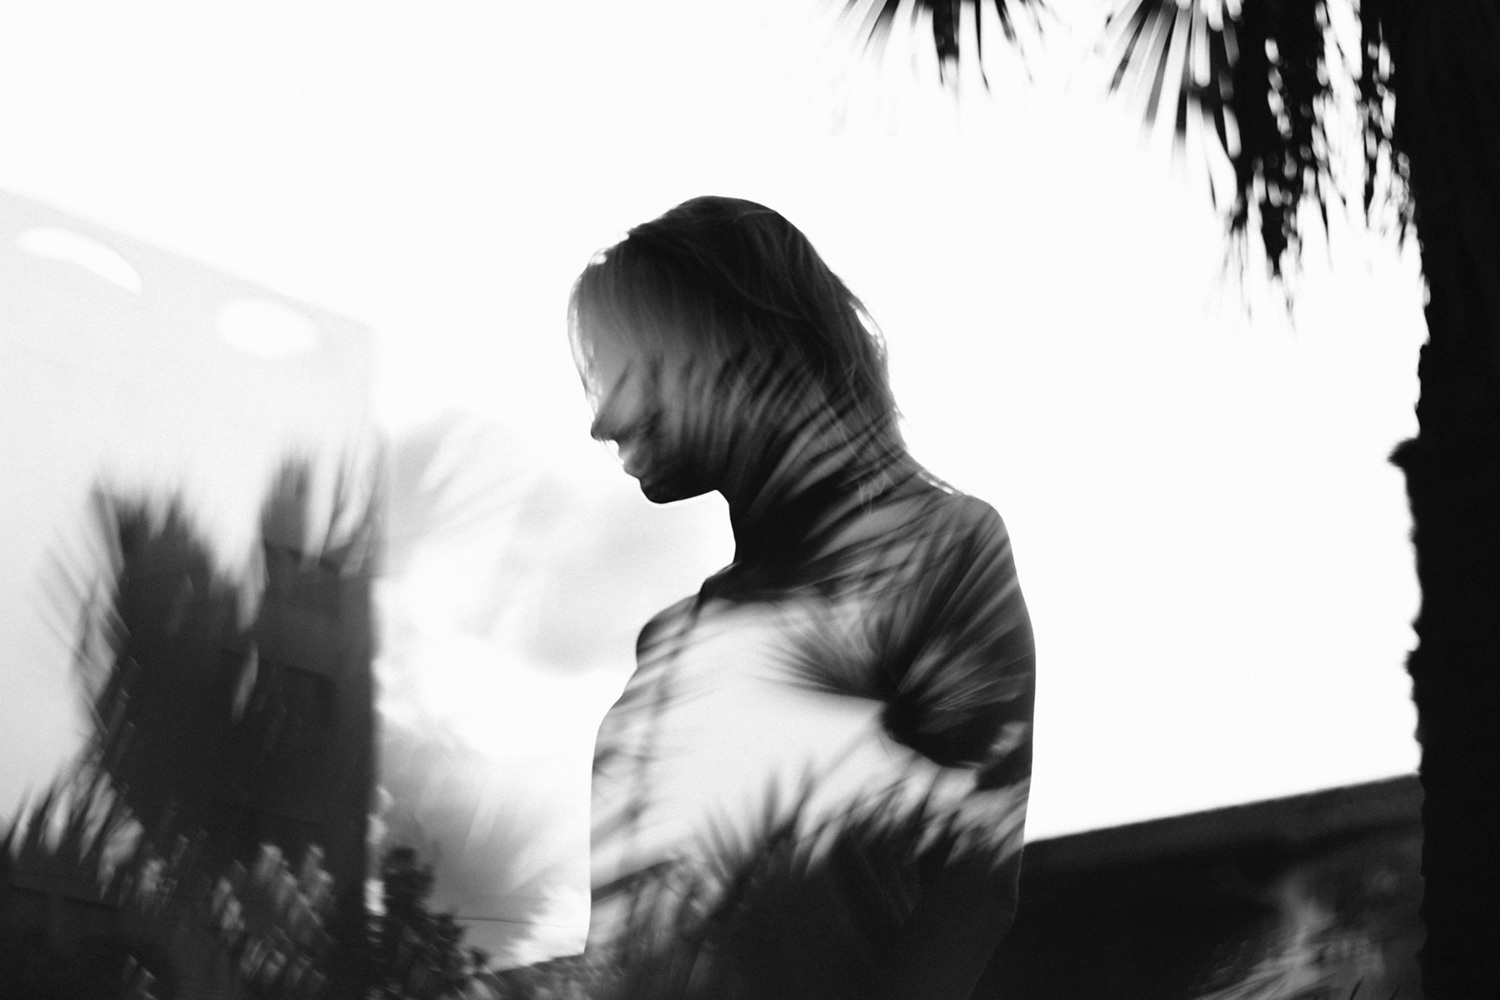 a double exposure image of palm tree shadows over the silhouette of a woman. The image is black and white.